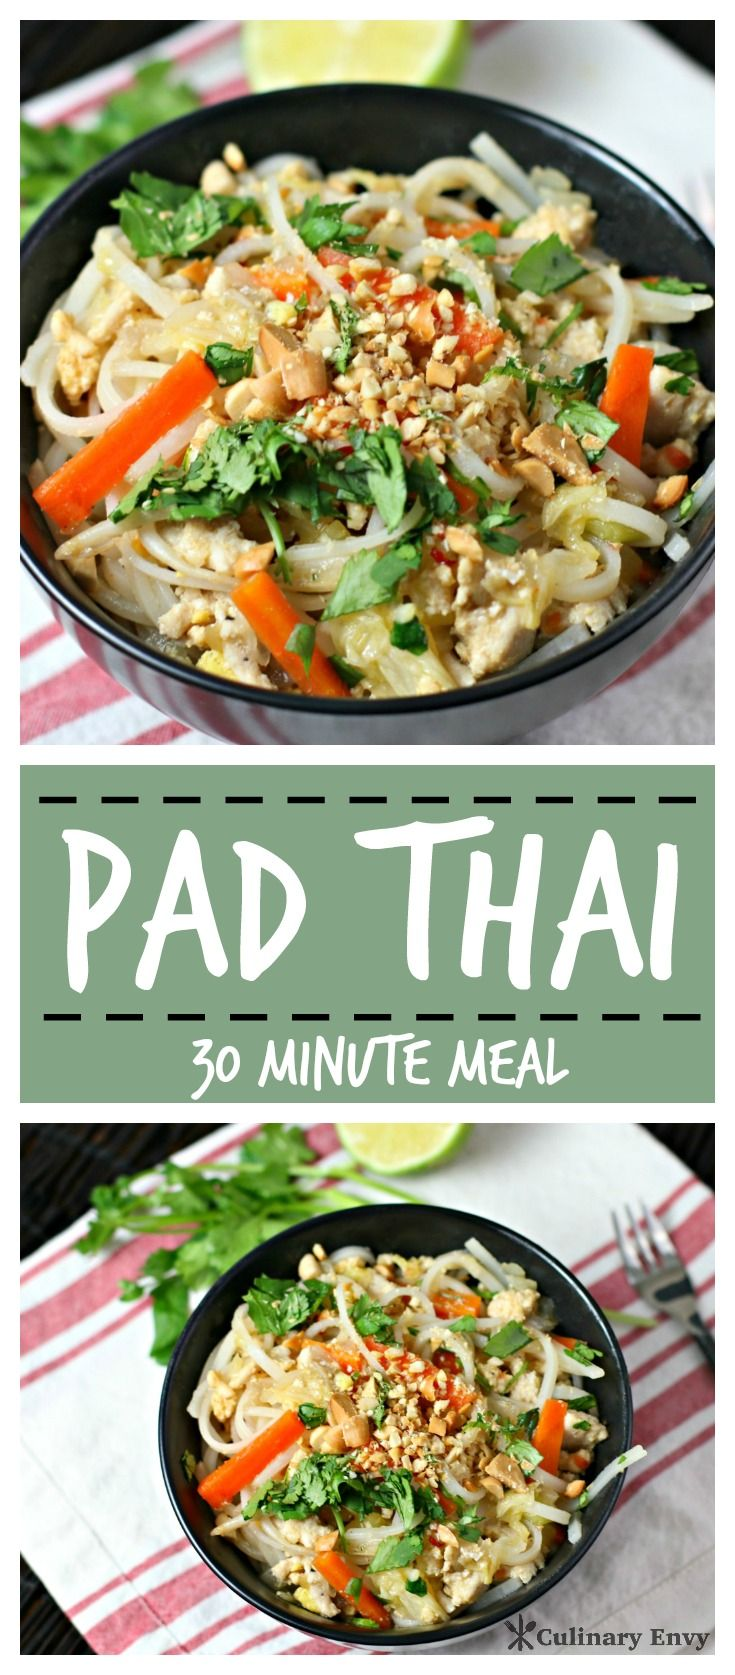 Homemade Pad Thai made with rice noodles, ground chicken, crisp vegetables and crunchy peanuts in a savory-sweet sauce are Easy and Delicious! Click to read more or Pin & Save for later!